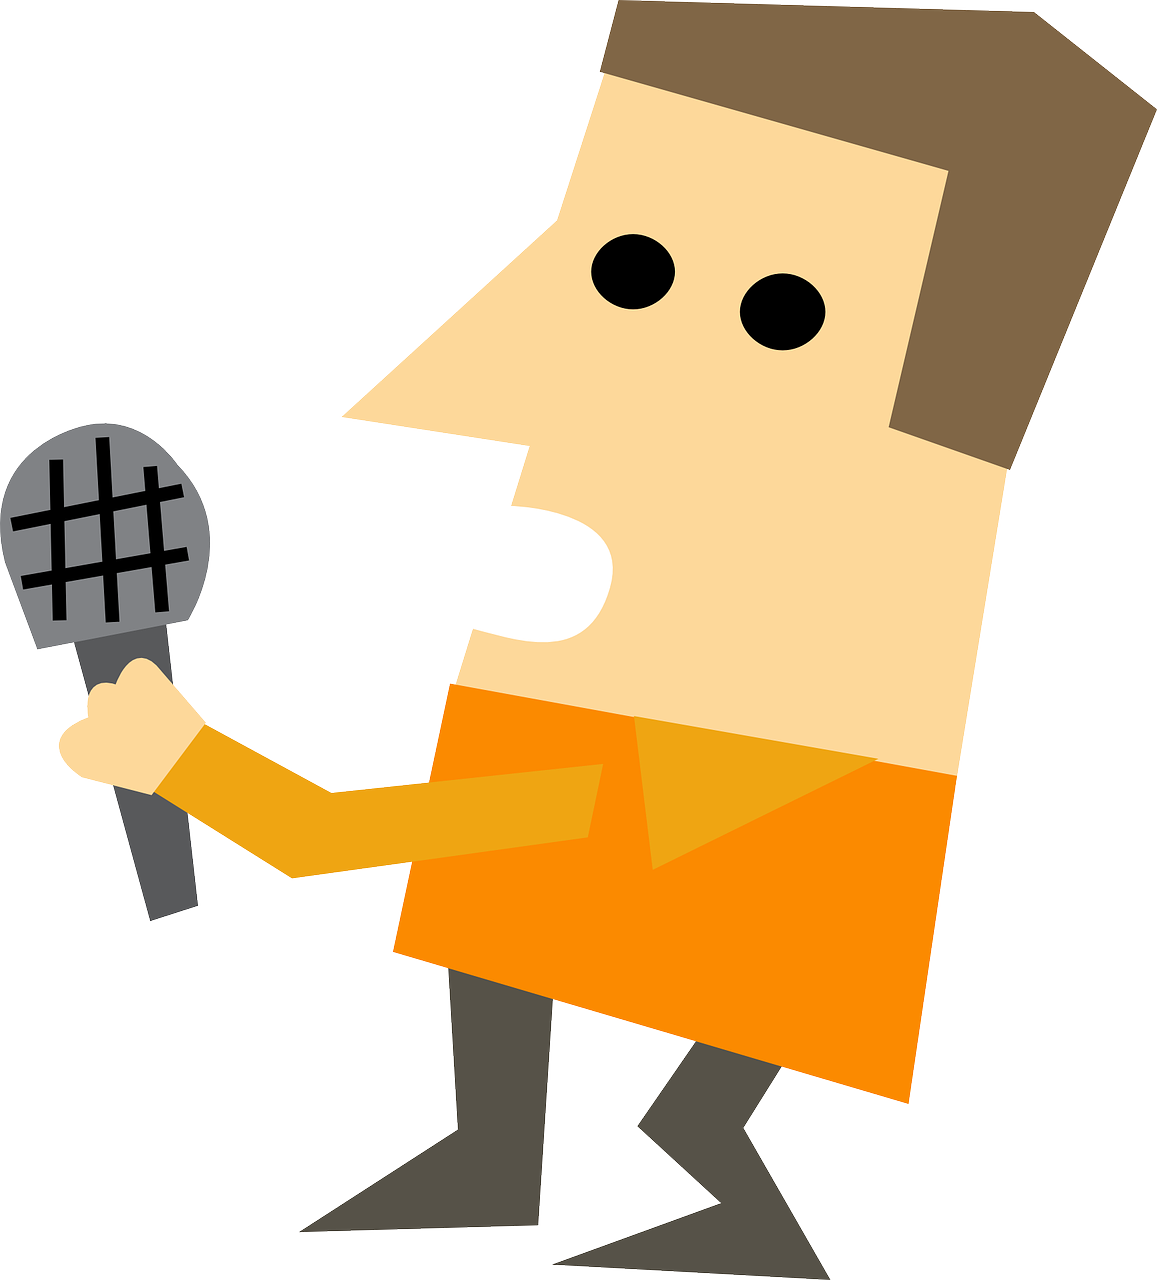 Clipart image of a man holding a microphone, as if he is interviewing someone.